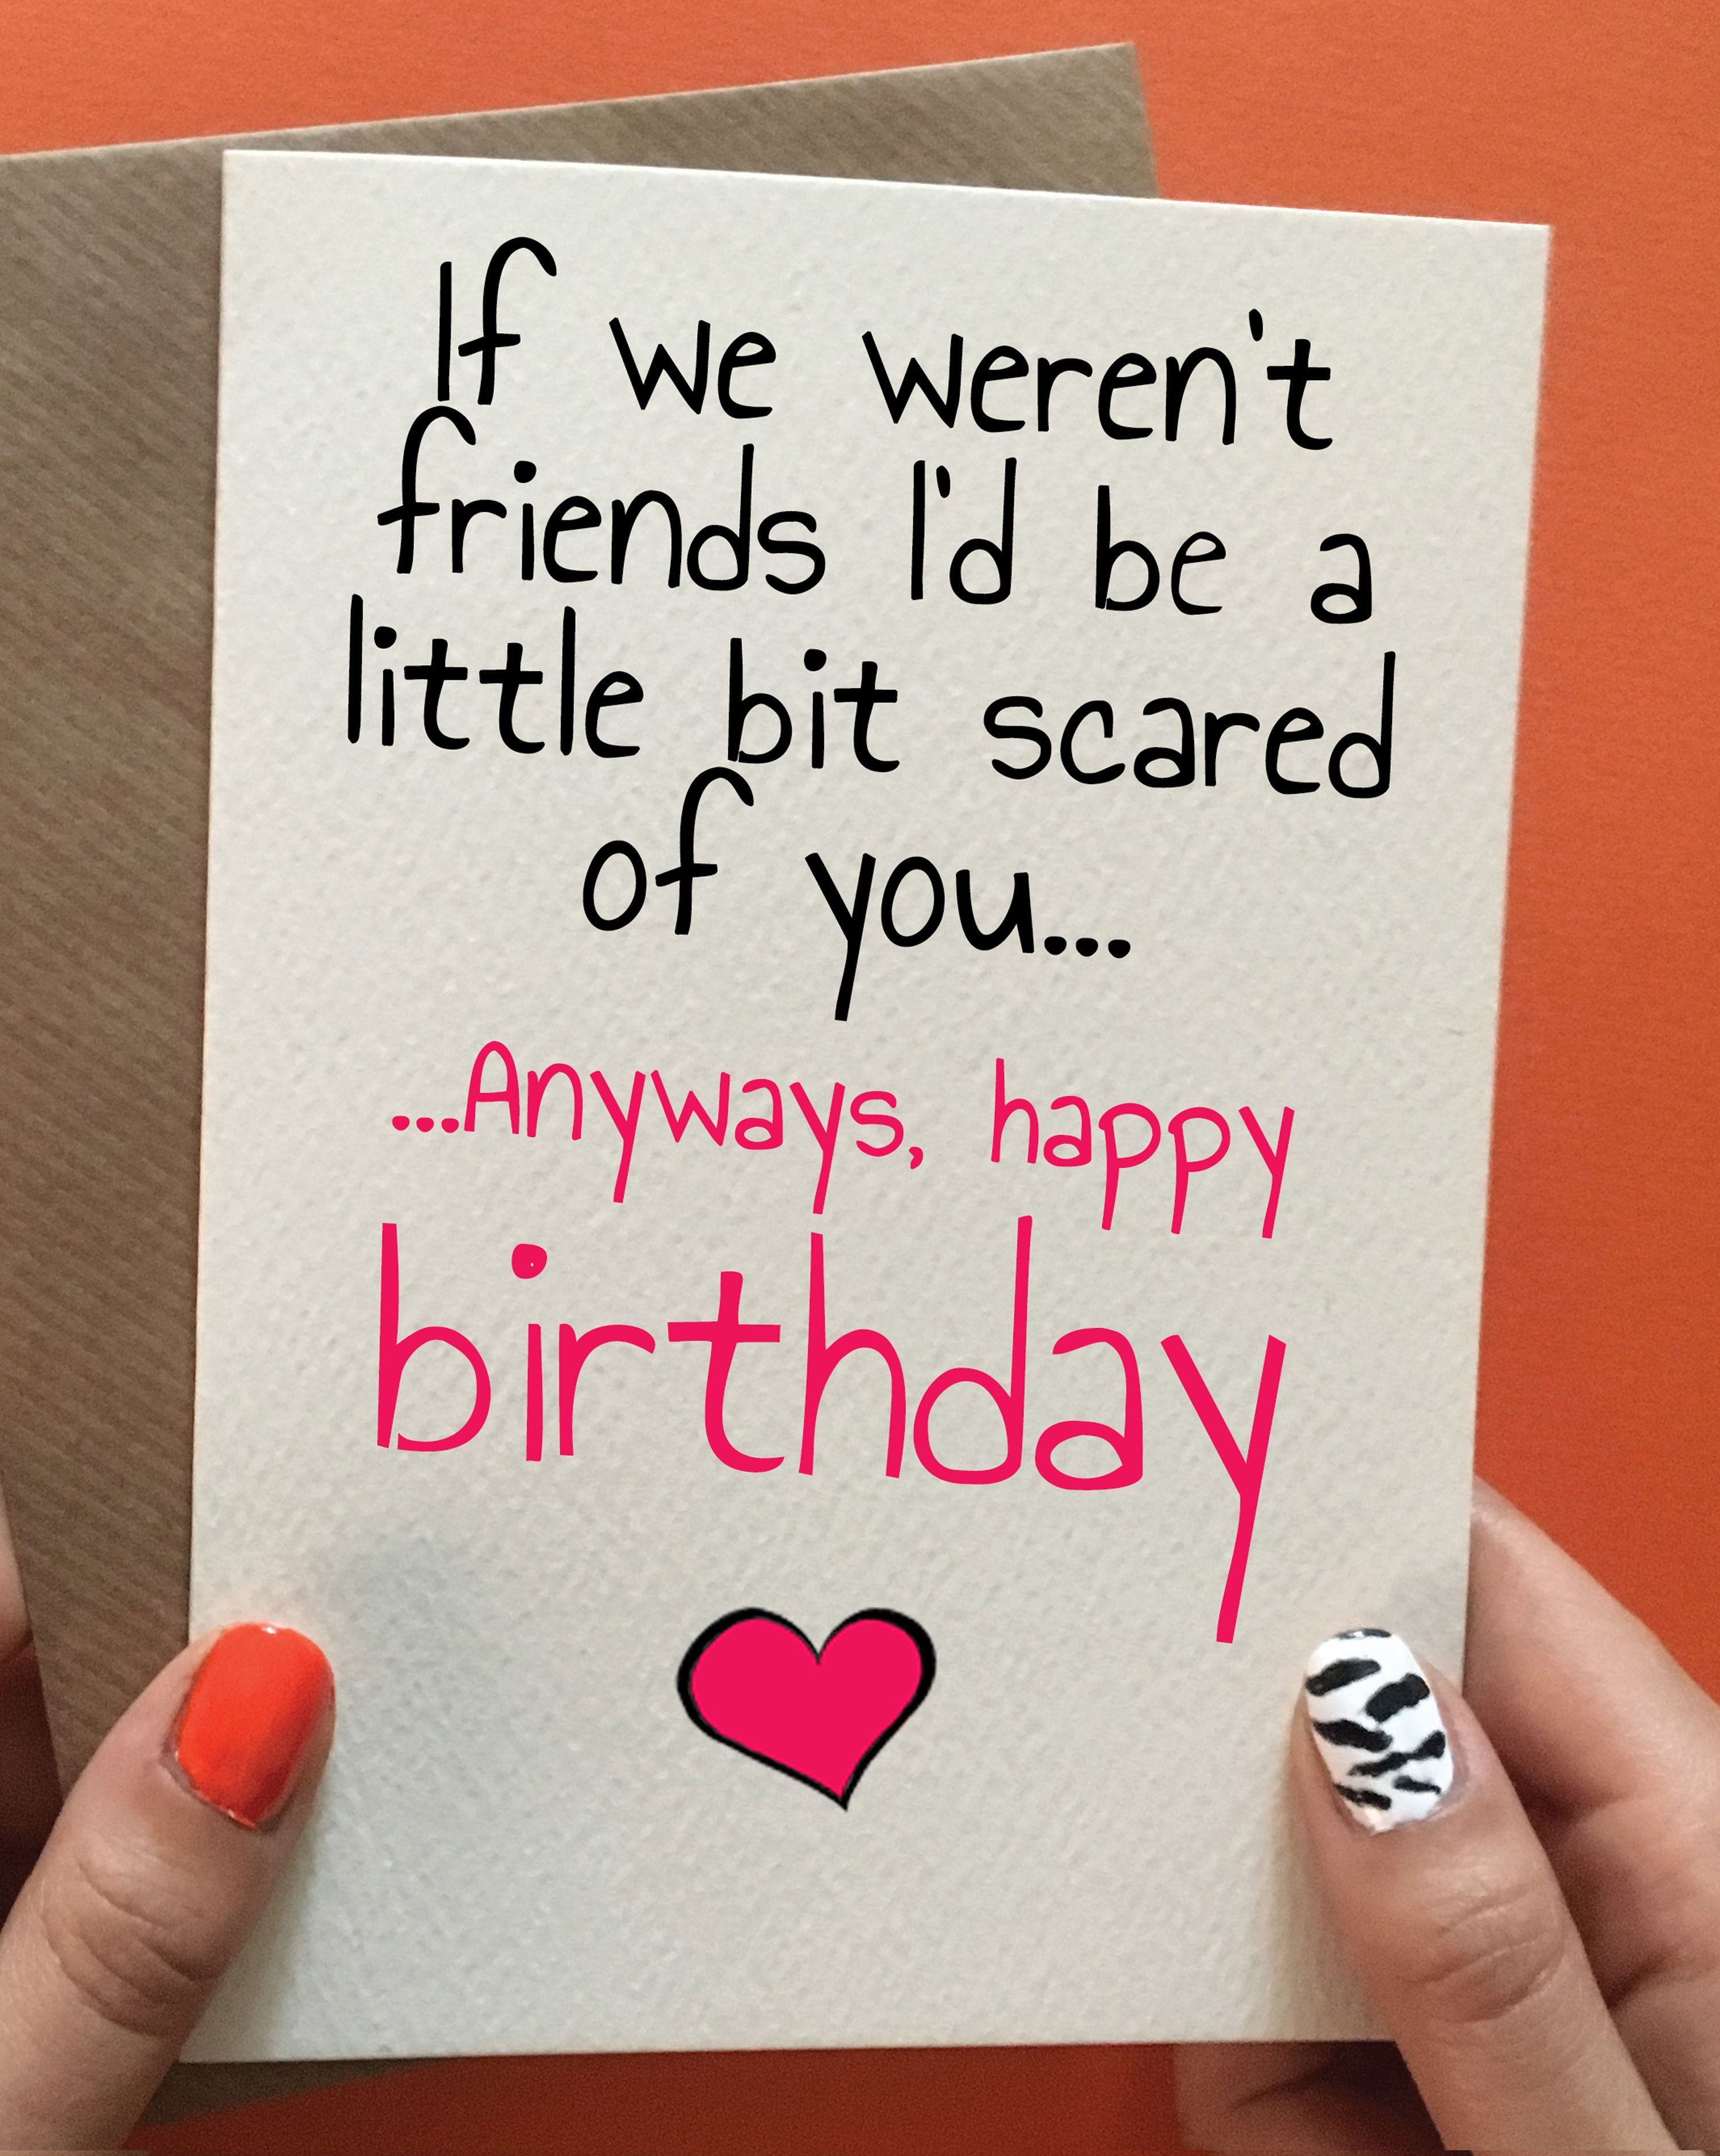 Bit Scared Best Friend Birthday Cards Cool Birthday Cards Birthday Gifts For Teens